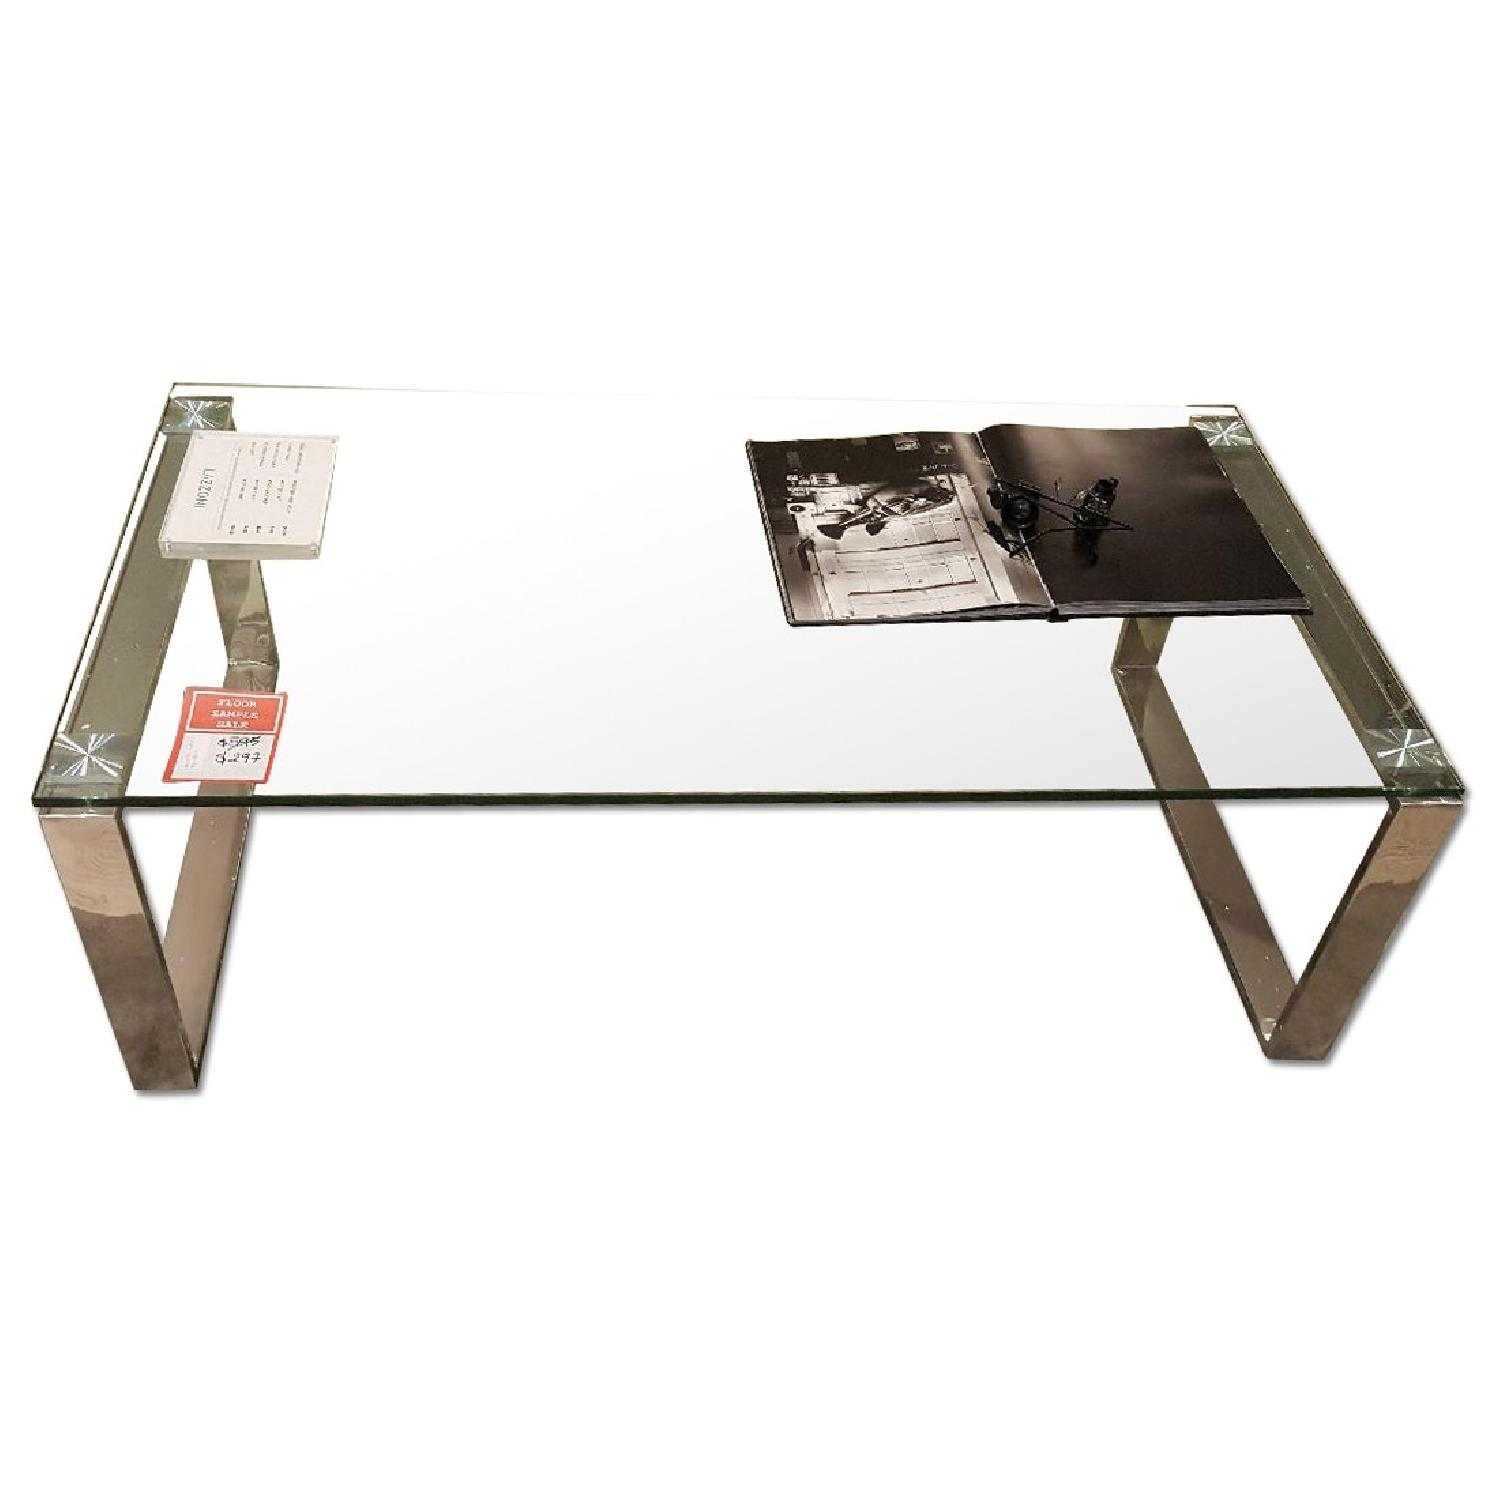 Lazzoni Glass Coffee Table - image-0